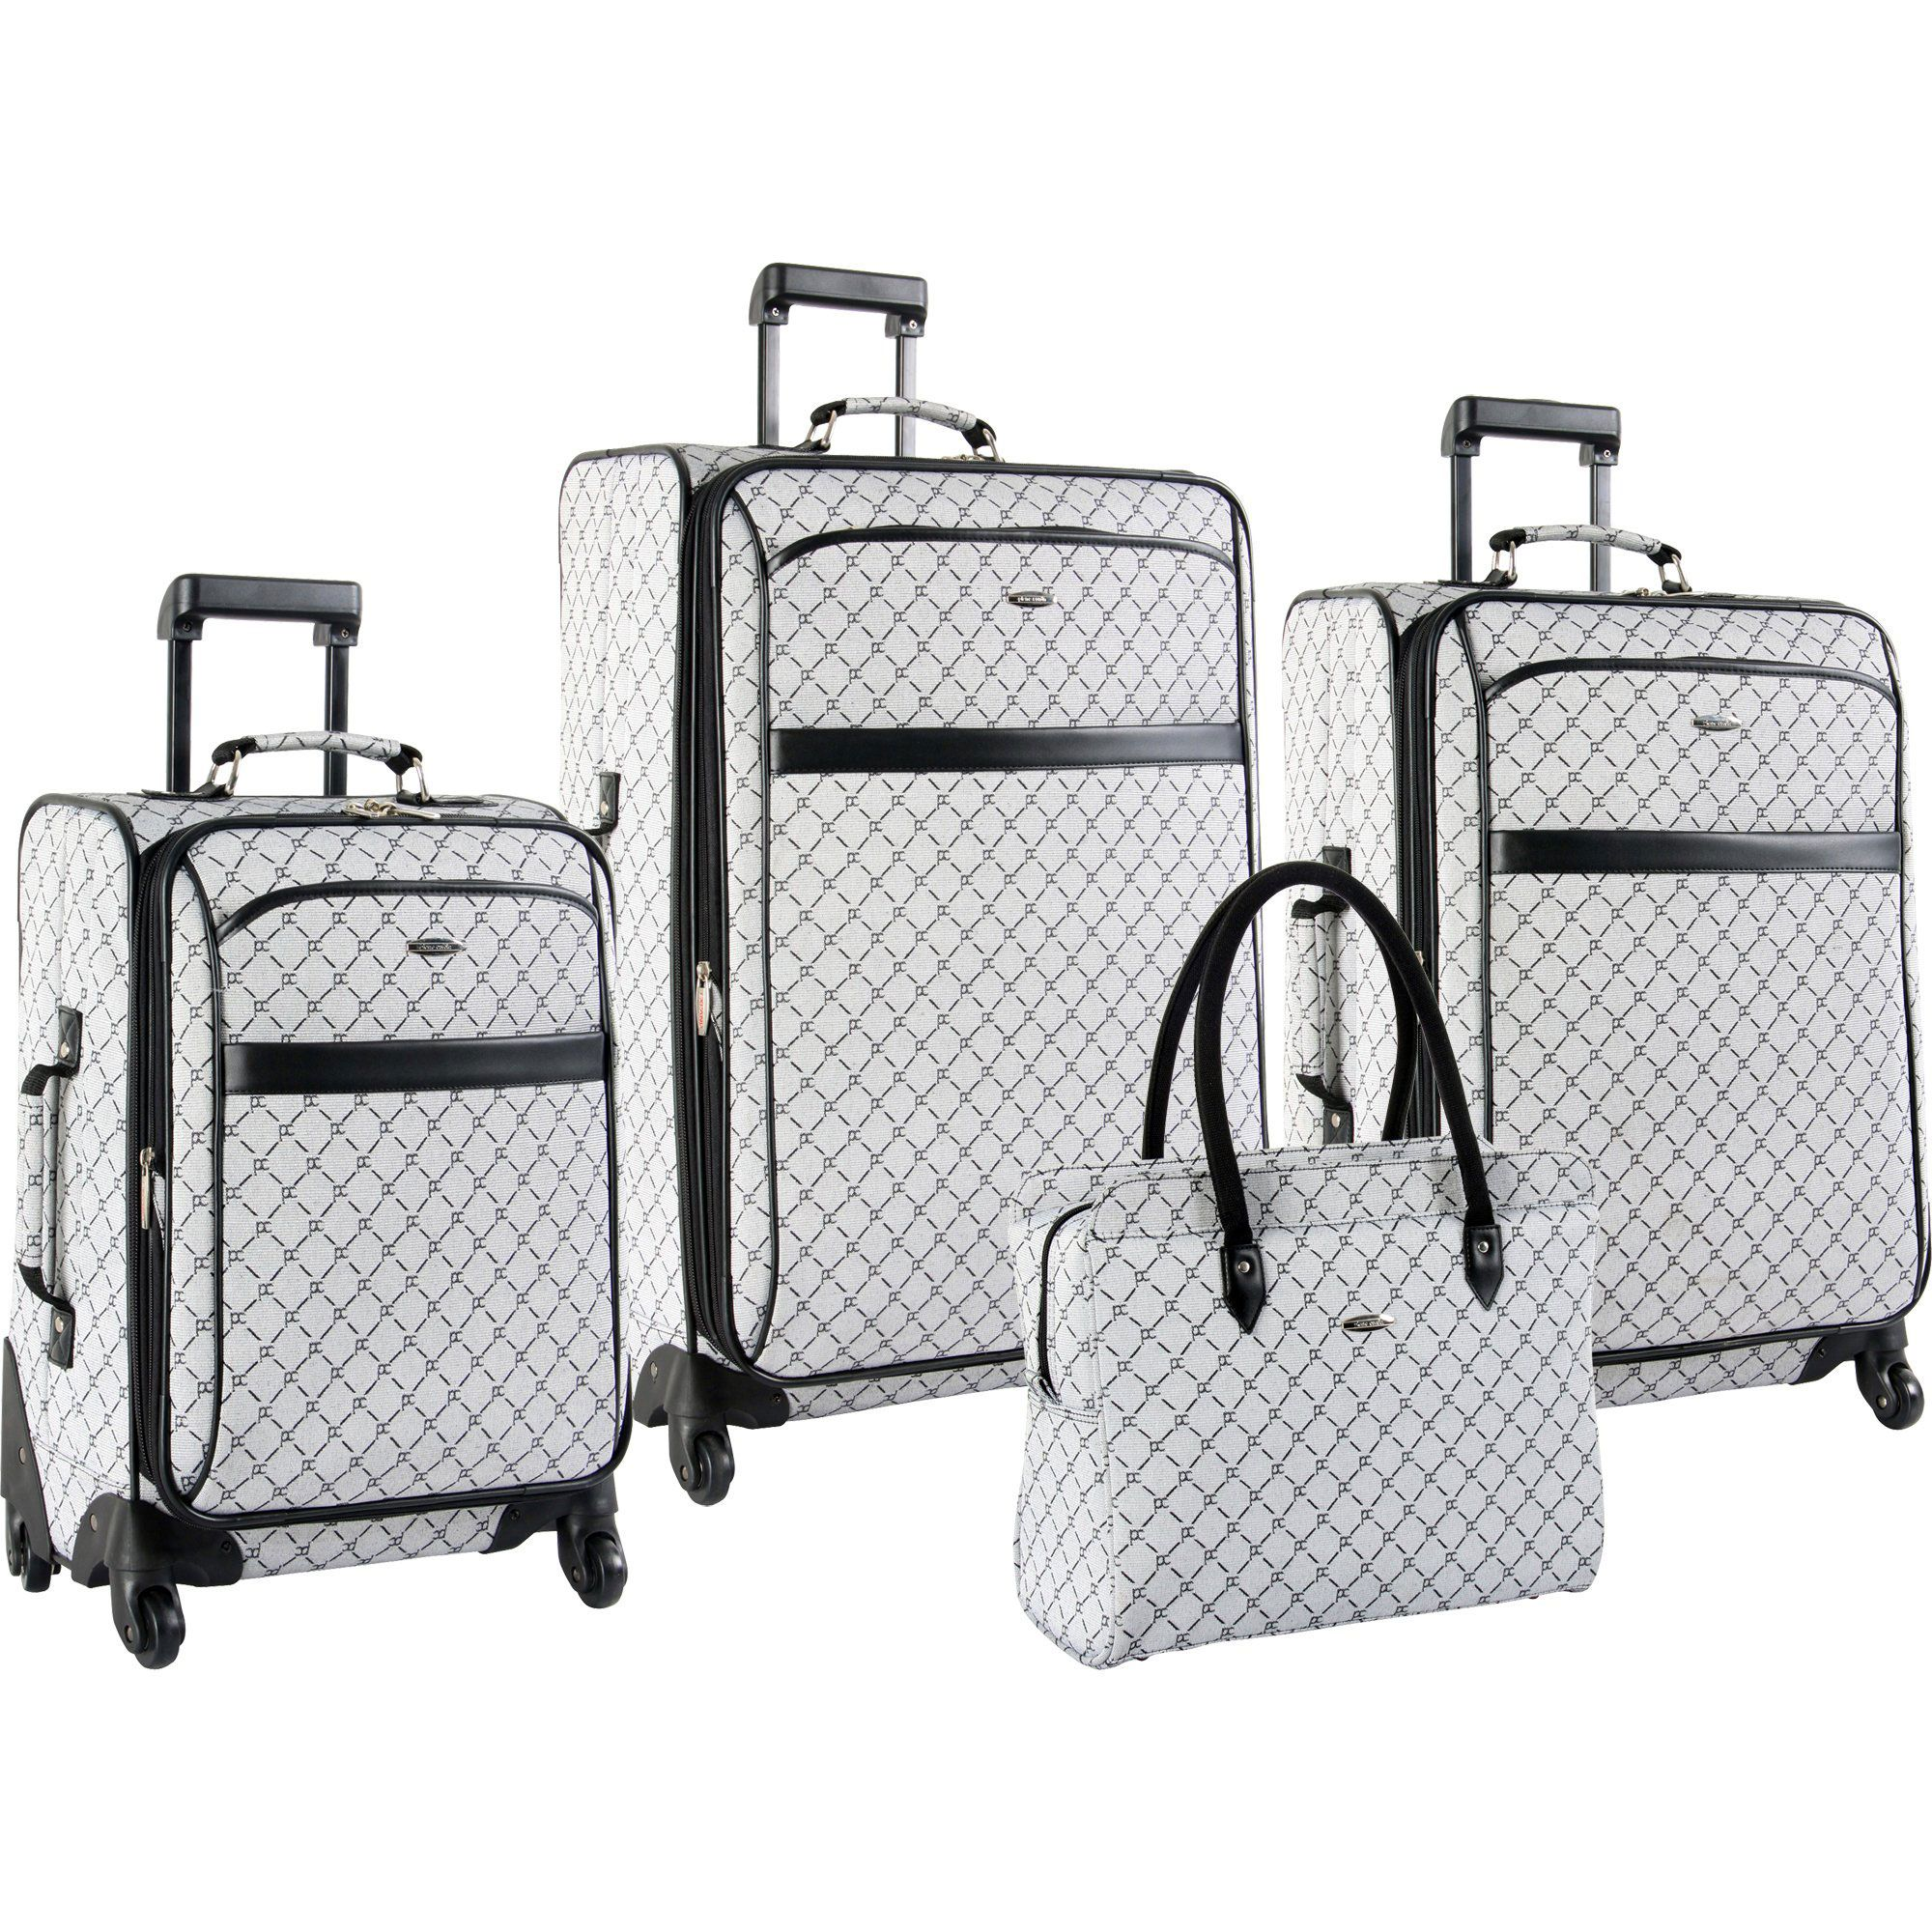 Designer Luggage Sets Http Www Nowsignal Garment Bag